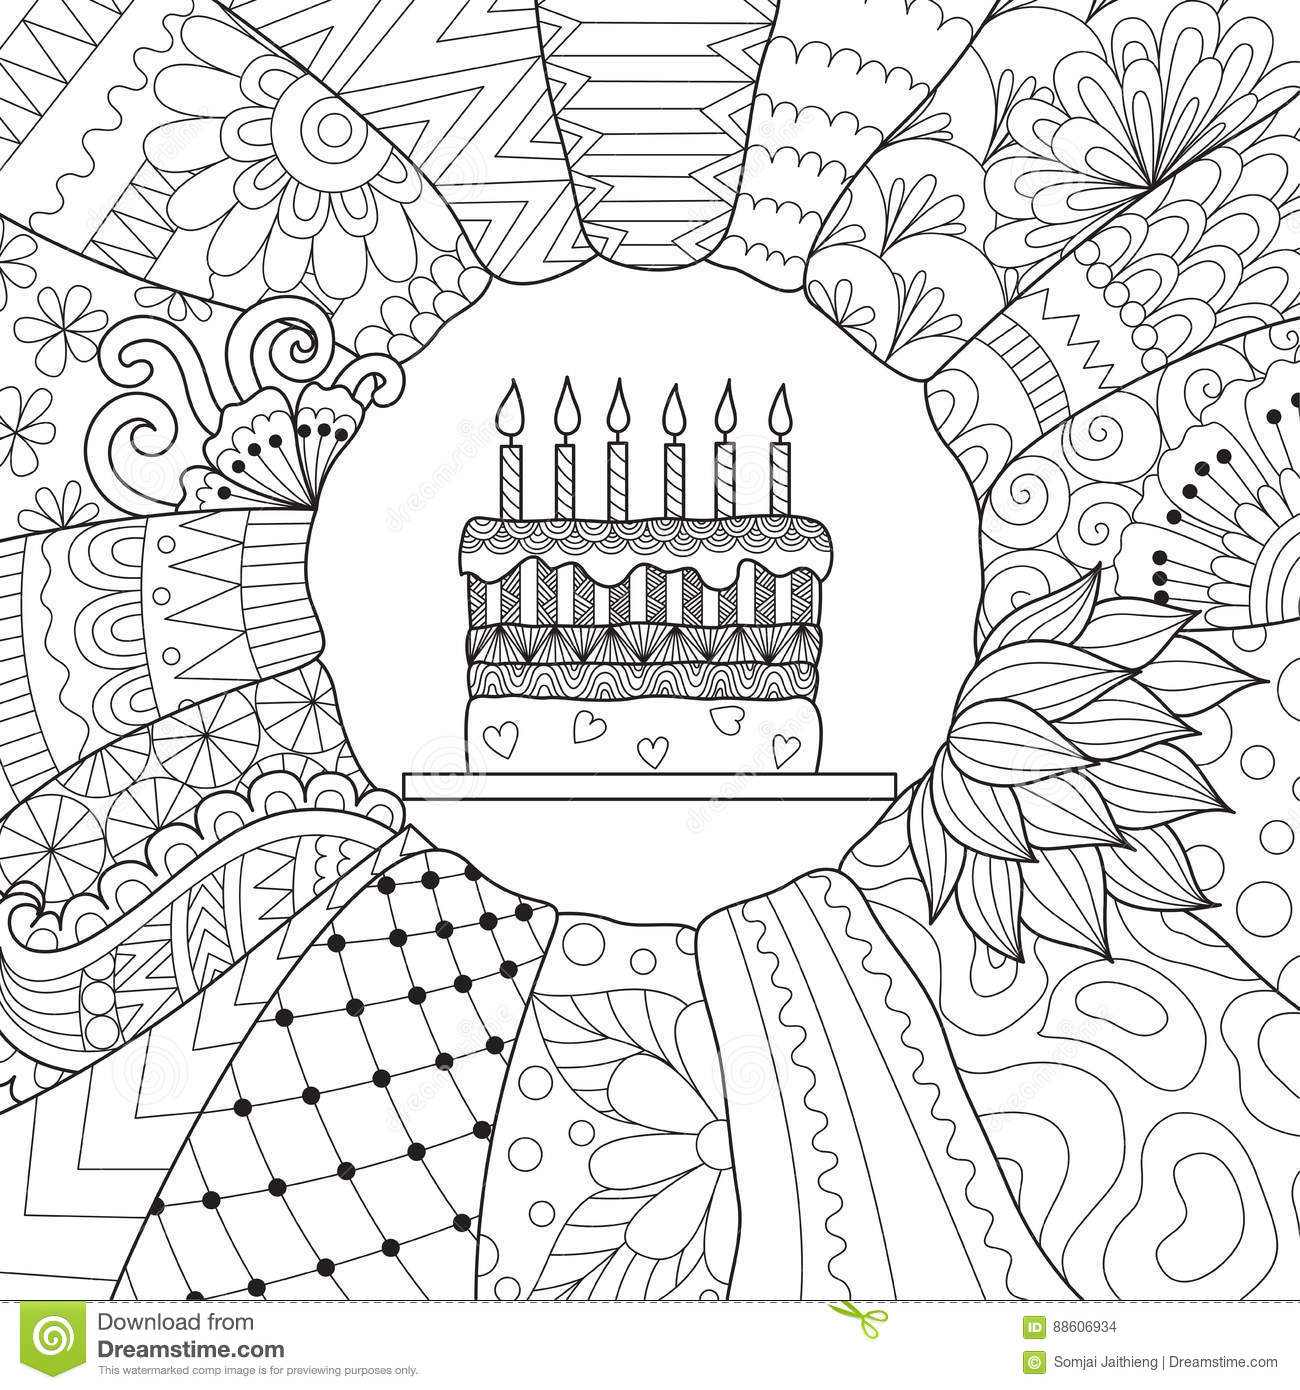 Birthday cake stock vector. Illustration of book, coloring ...